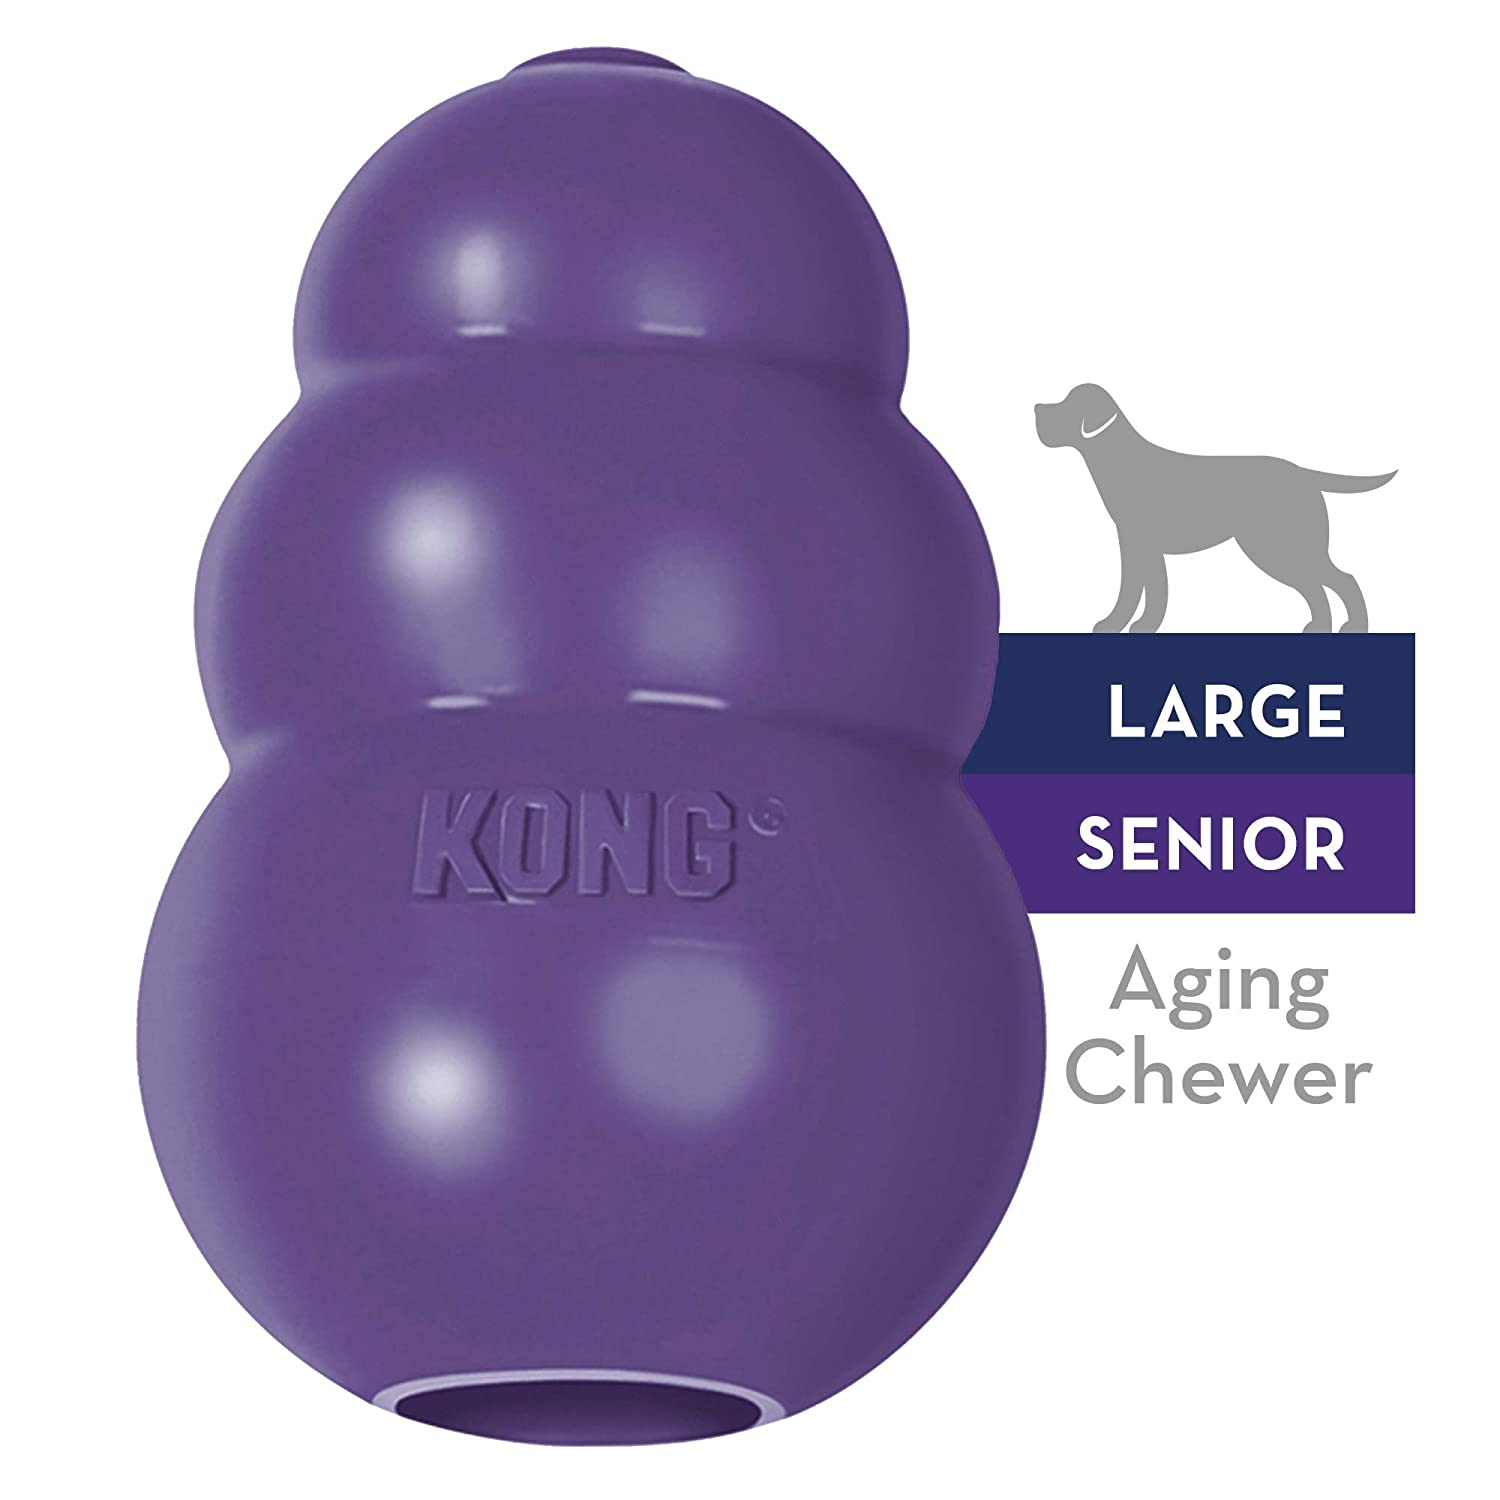 KONG - Senior Dog Toy - Gentle Natural Rubber - Fun to Chew, Chase and Fetch